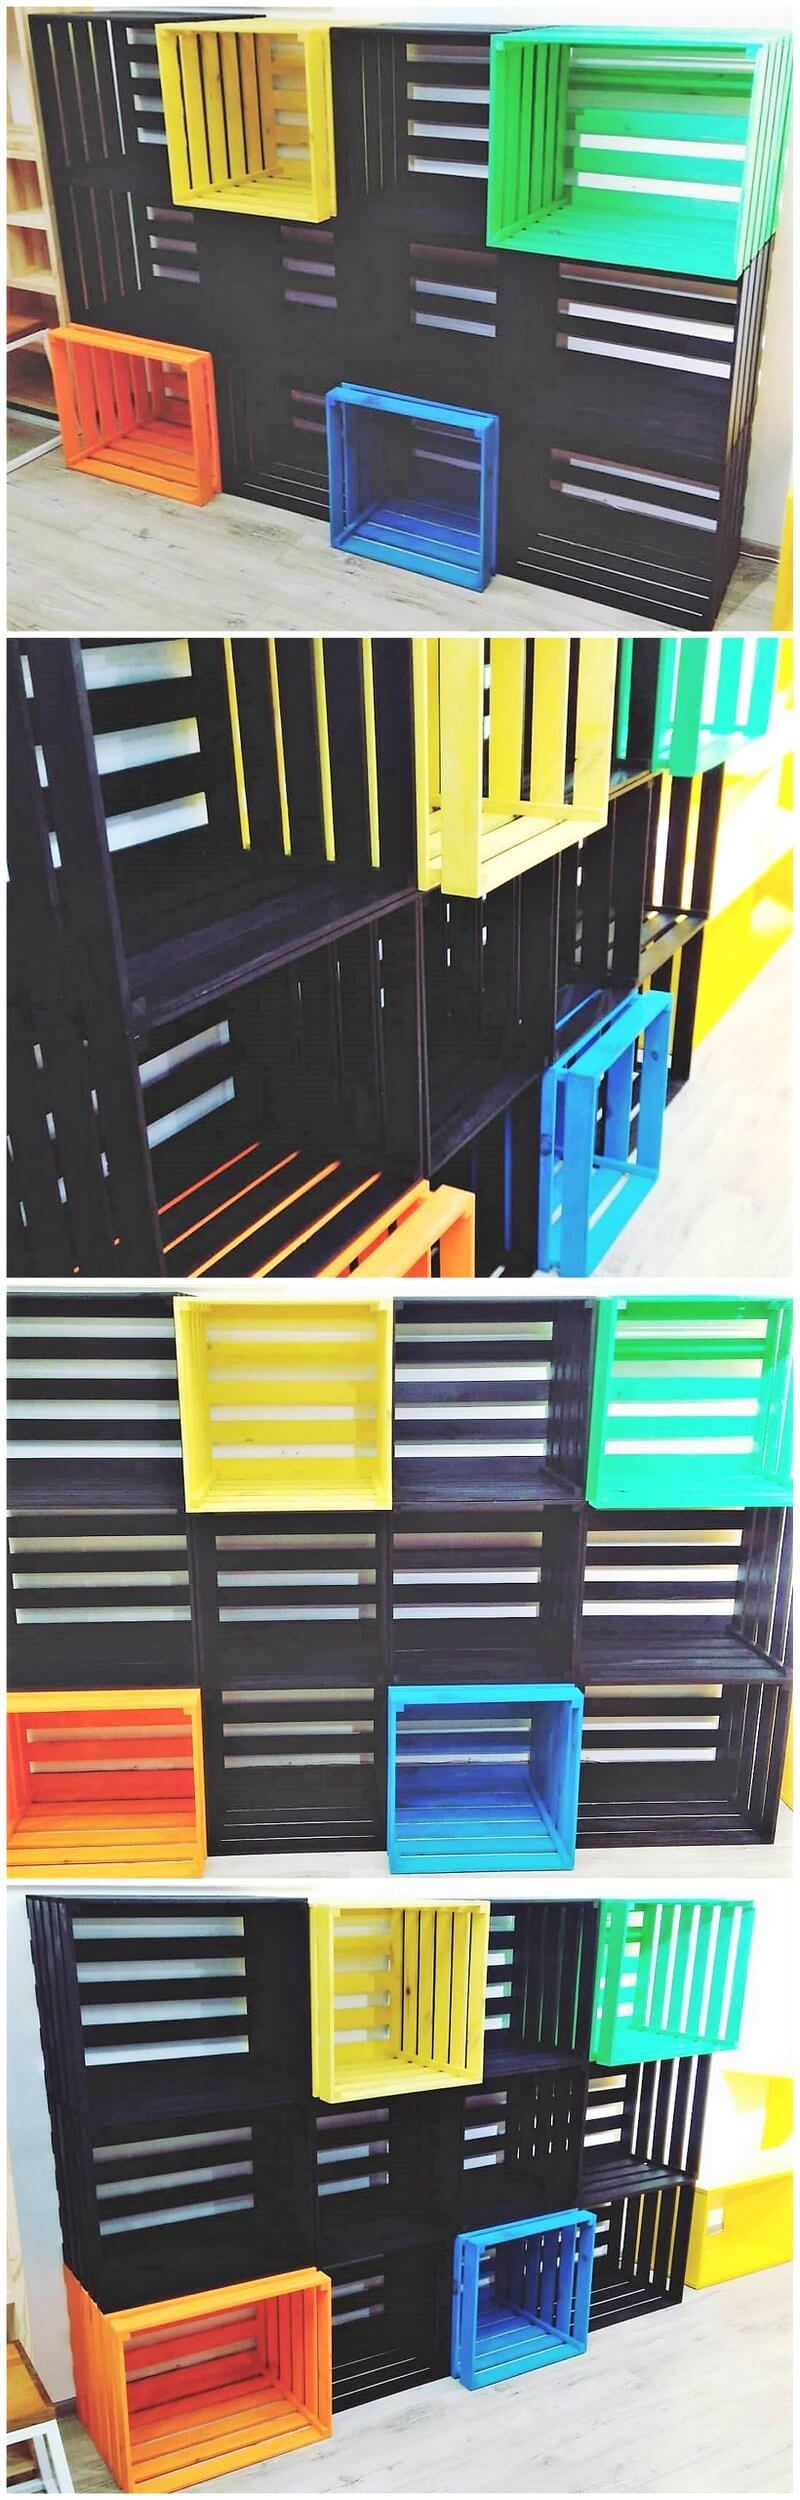 pallets fruit crates shelving